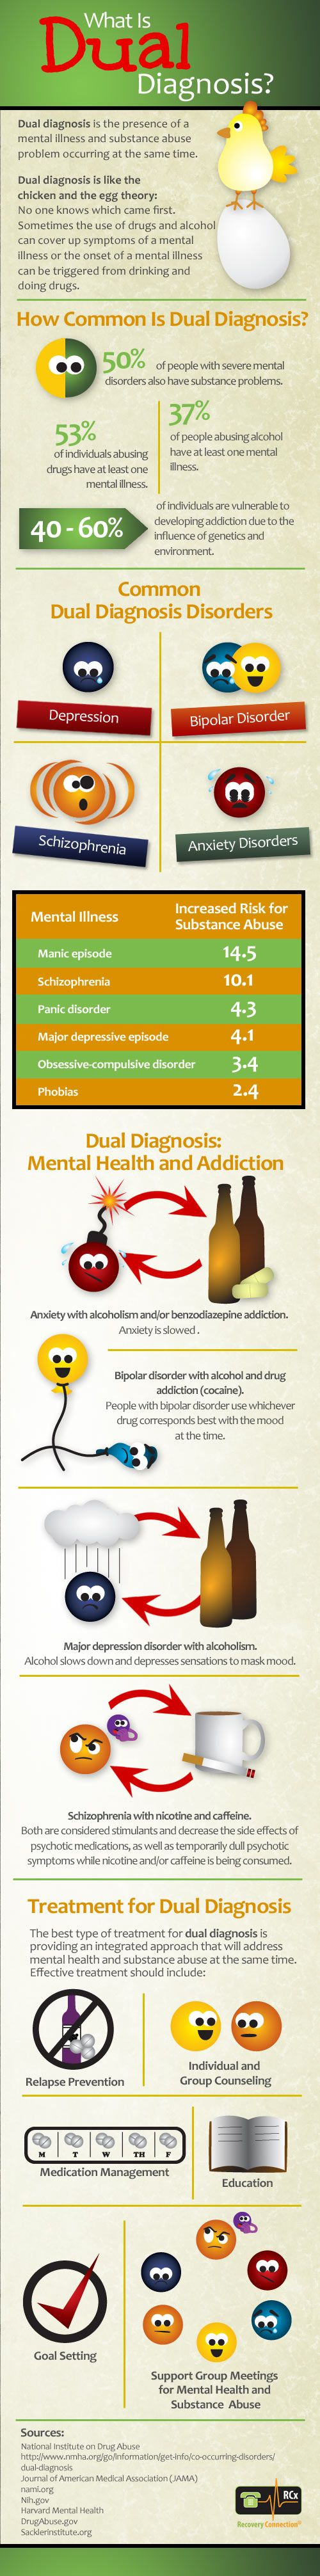 What is dual diagnosis? Learn more...  http://www.recoveryconnection.org/dual-diagnosis-infographic/# #DualDiagnosis